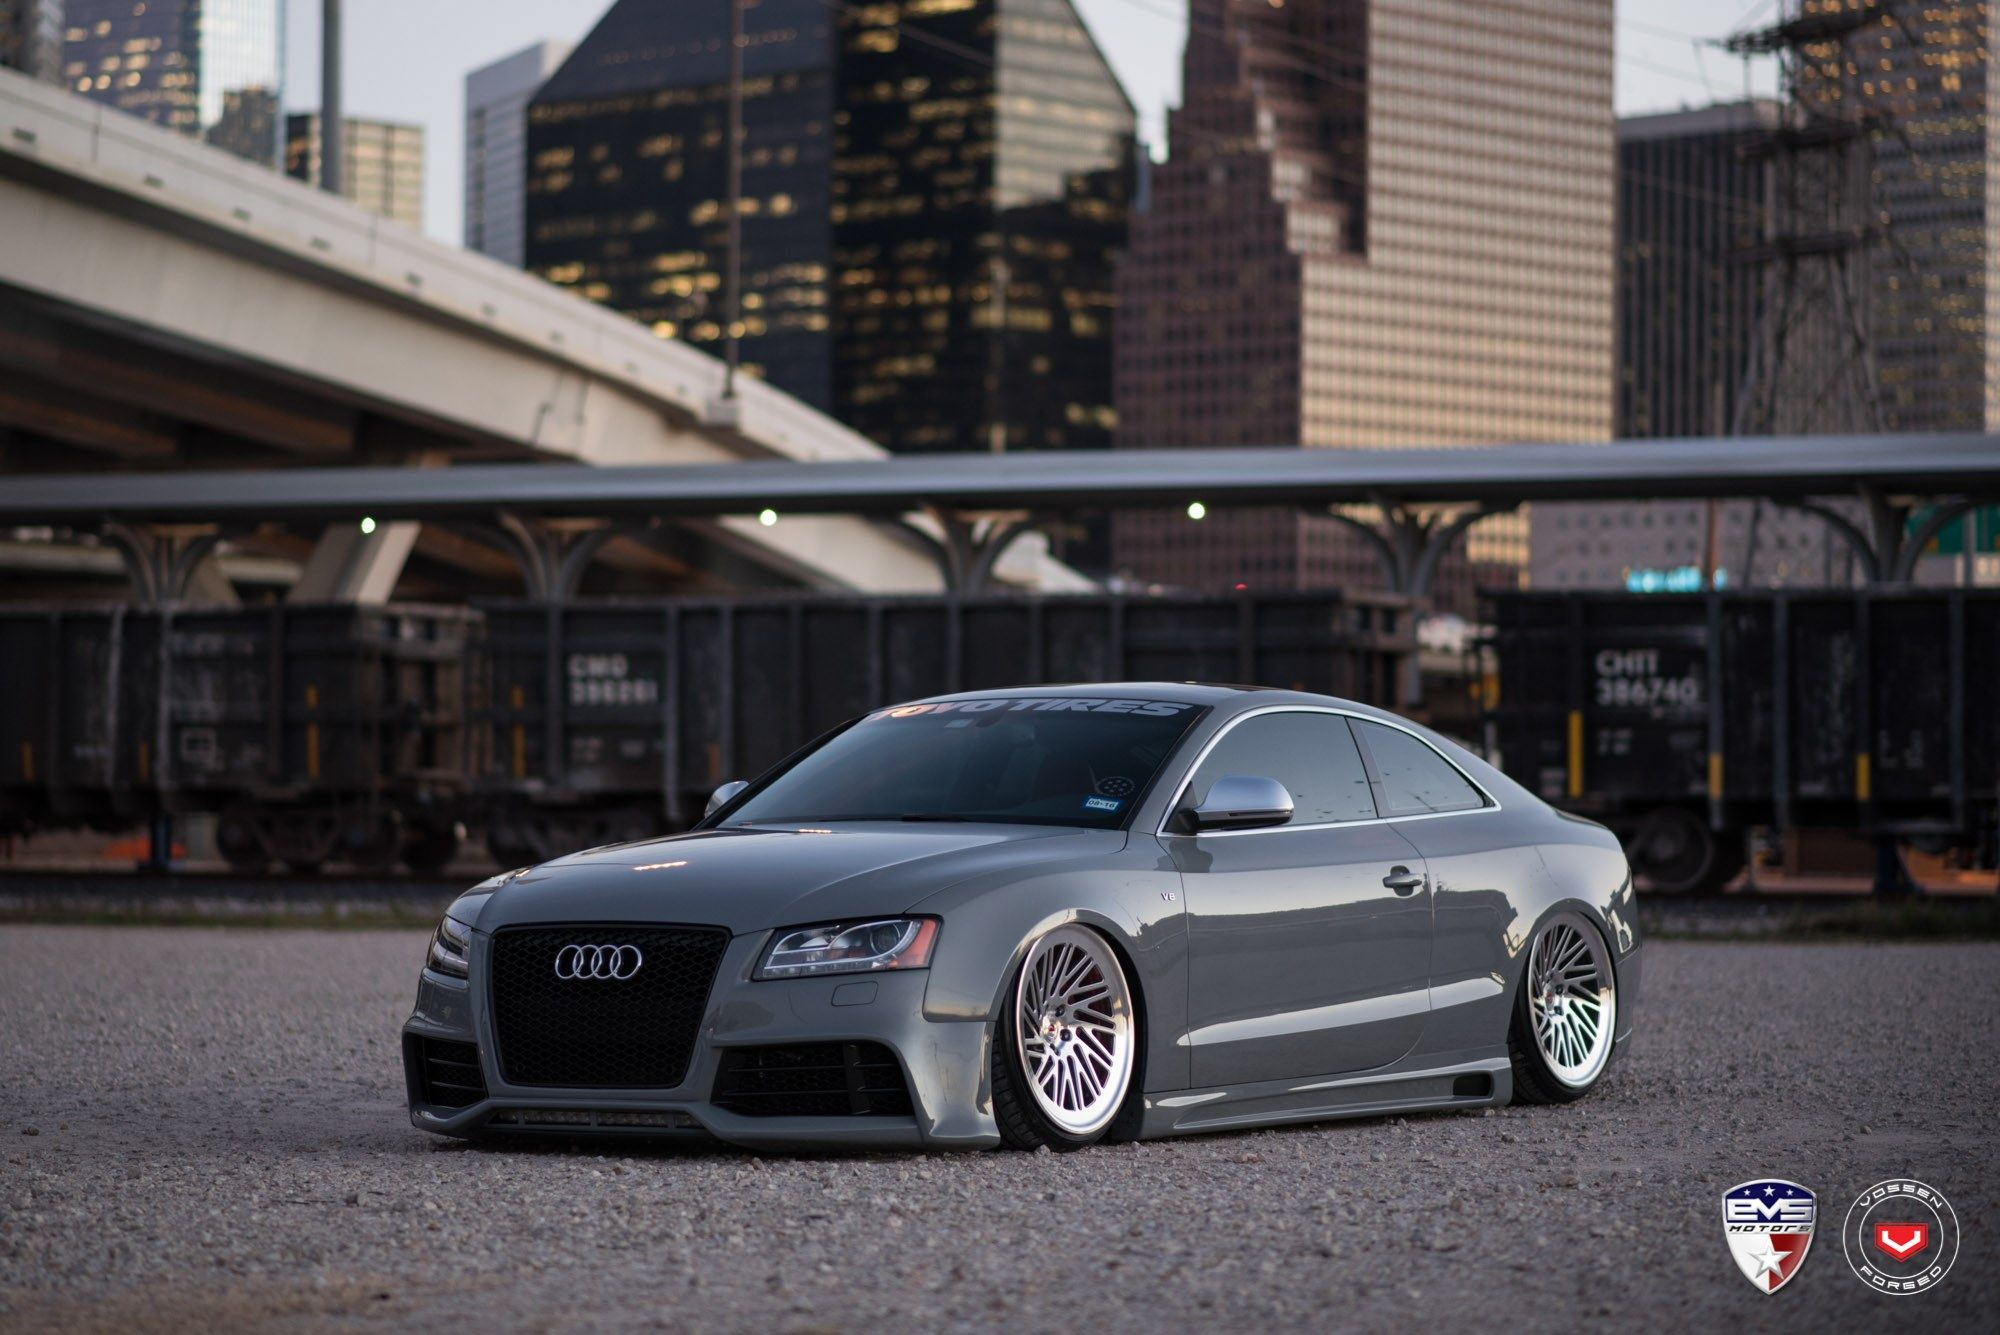 Vossen Wheels Audi A5 S5 Rs5 Vossen Forged Lc Series Lc